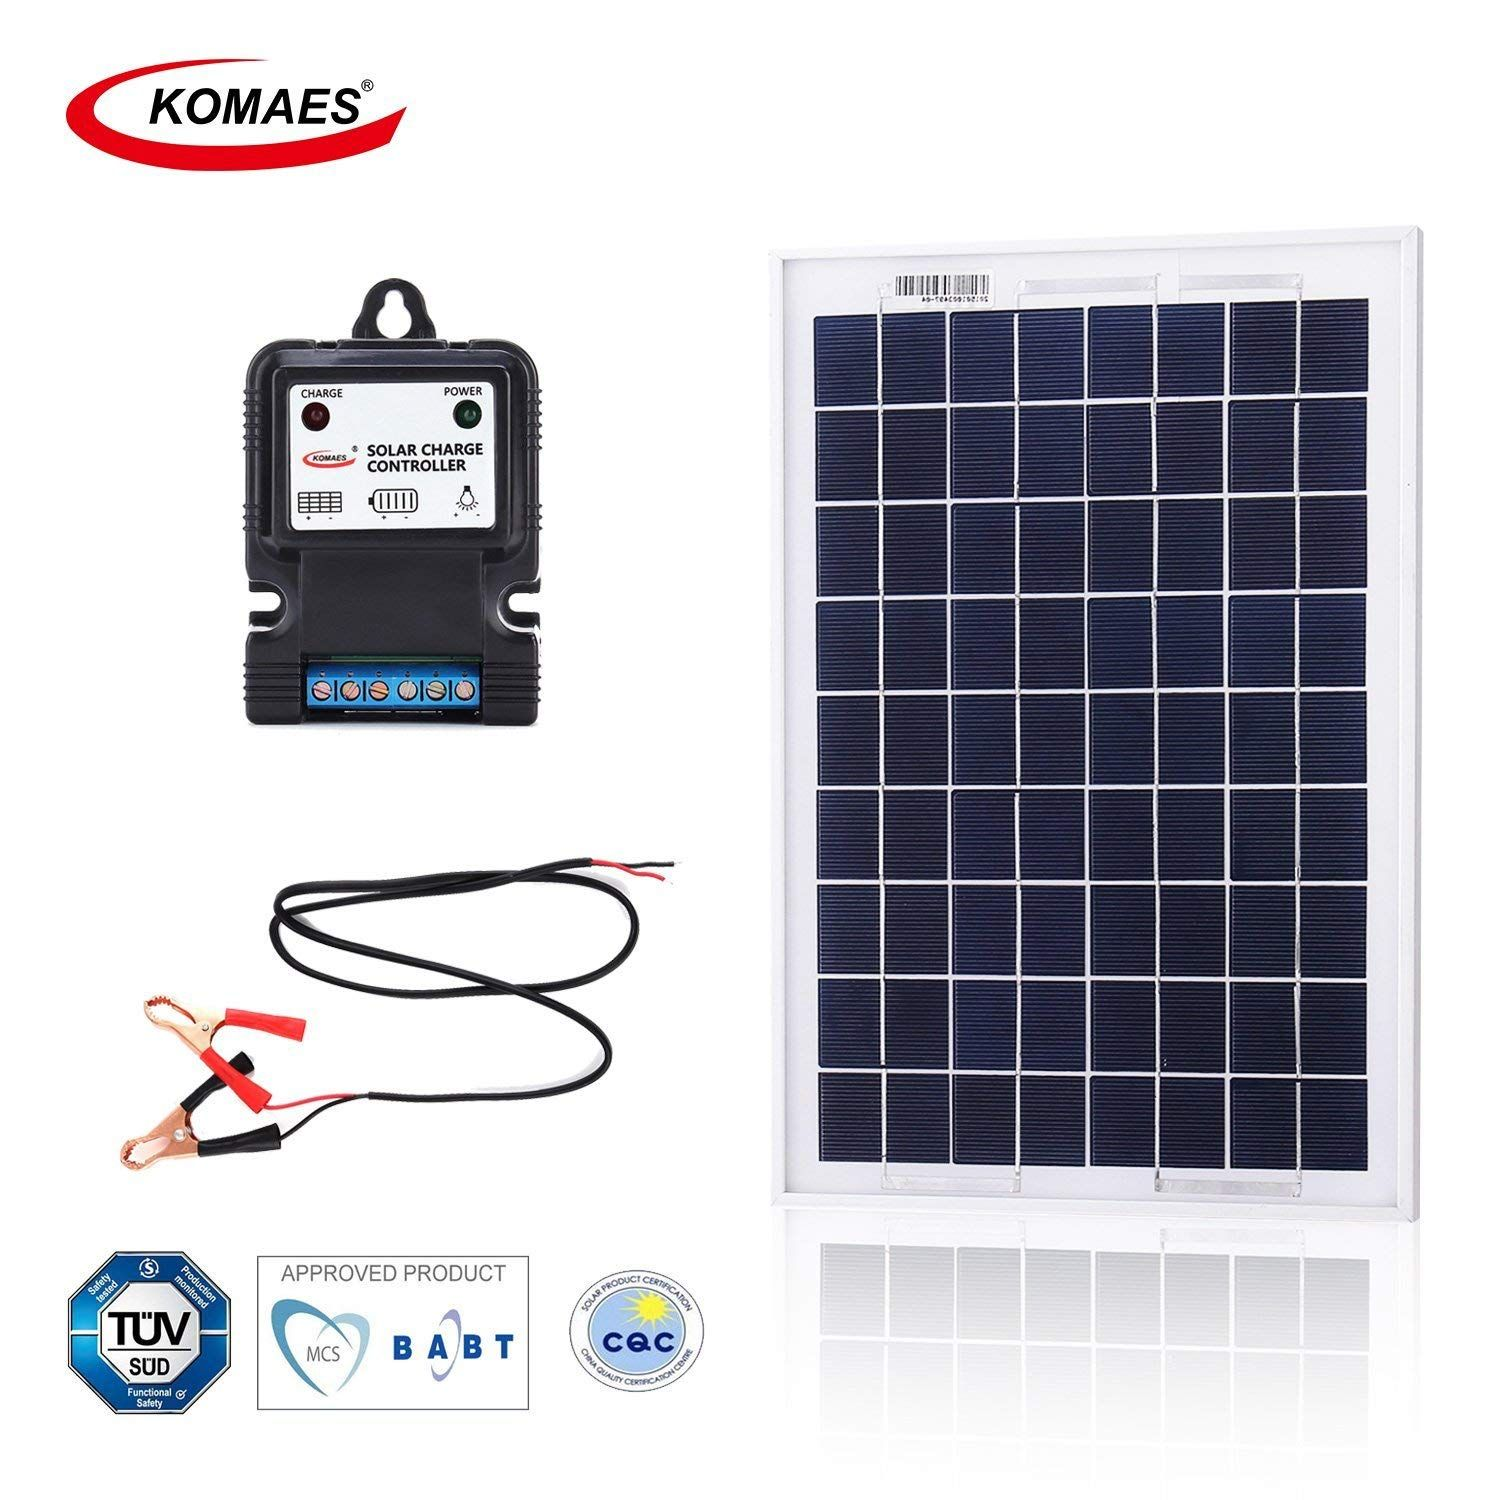 Komaes 10 Watt 12volt Polycrystalline Photovoltaic Pv Solar Panel Kit 12v Solar Power Starter Kit With Mc4 Connector Solar Panels Solar Energy Panels Solar Pv Panel